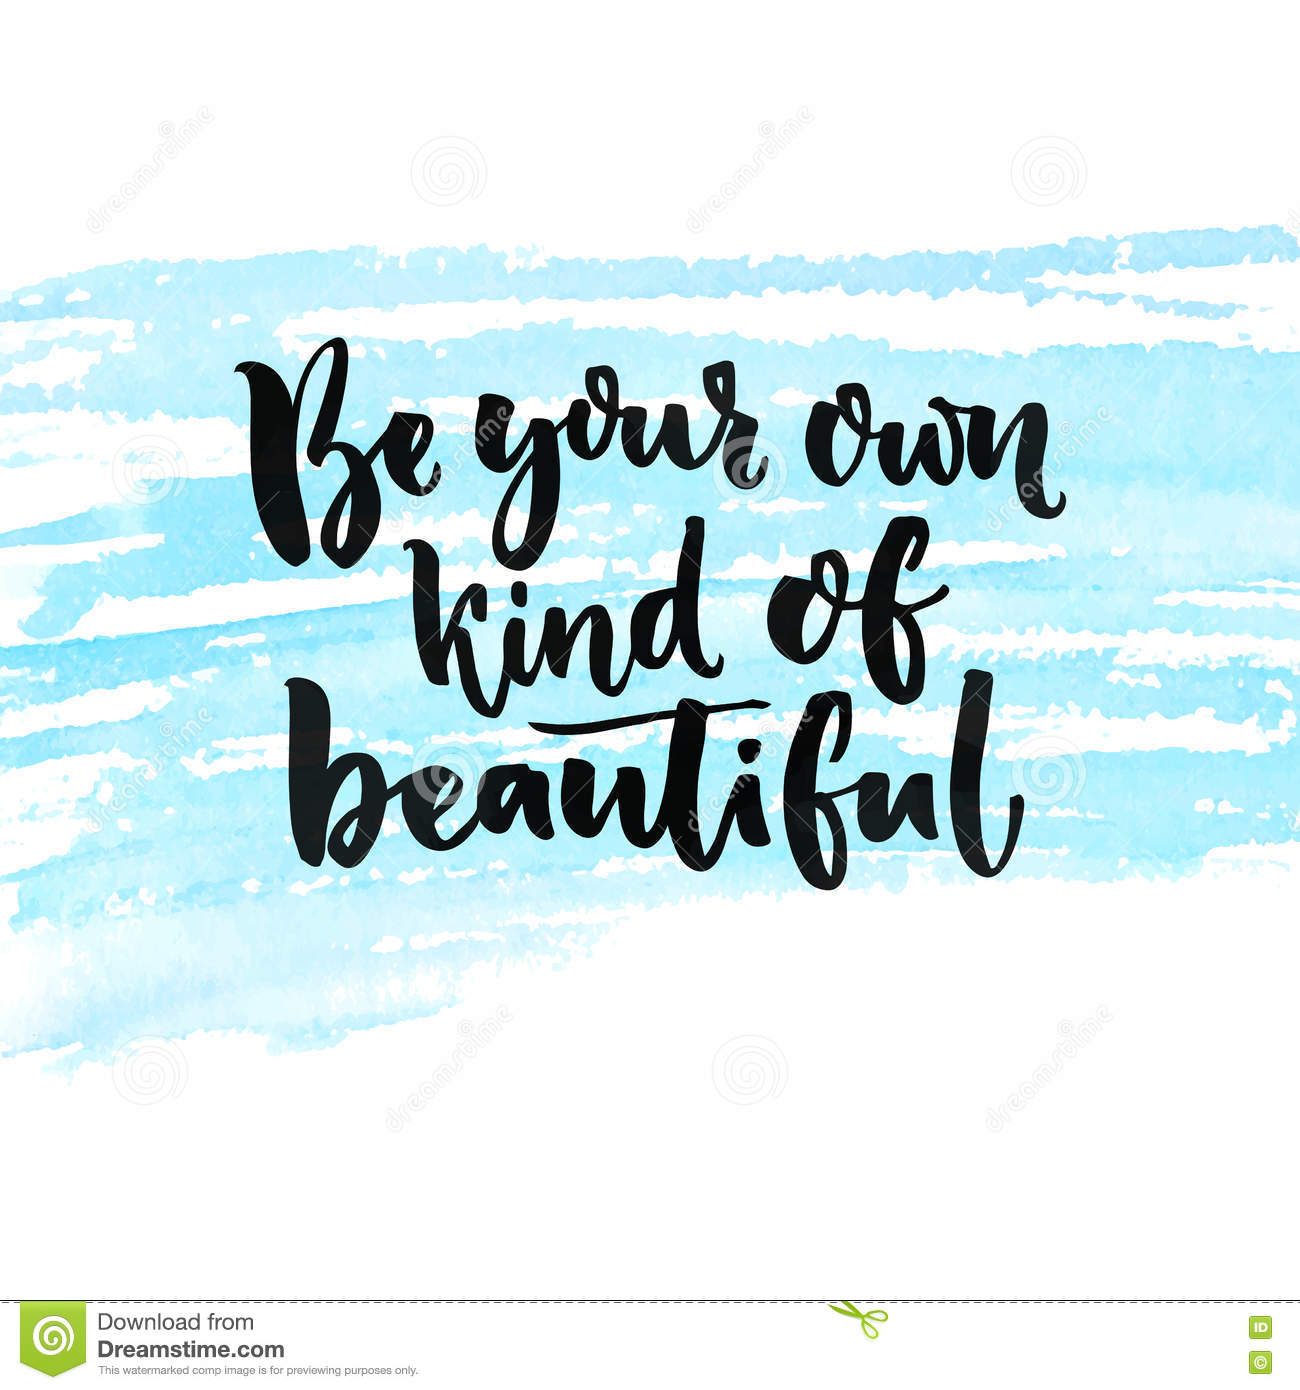 be your own kind of beautiful inspirational quote about beauty and self esteem brush